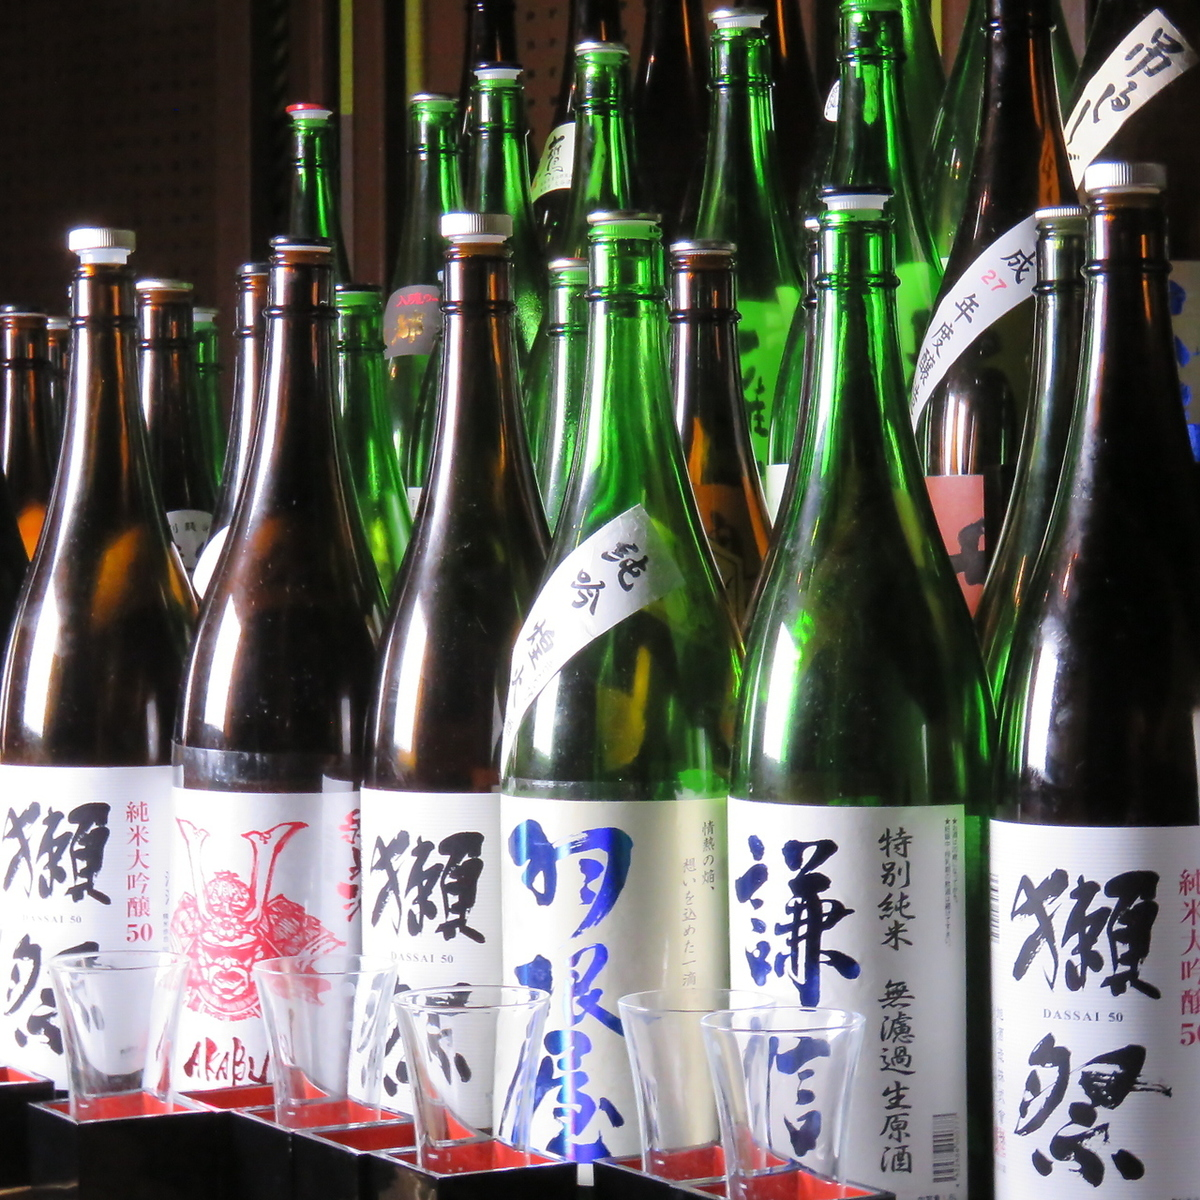 You can enjoy 100 local sake nationwide all you can drink.